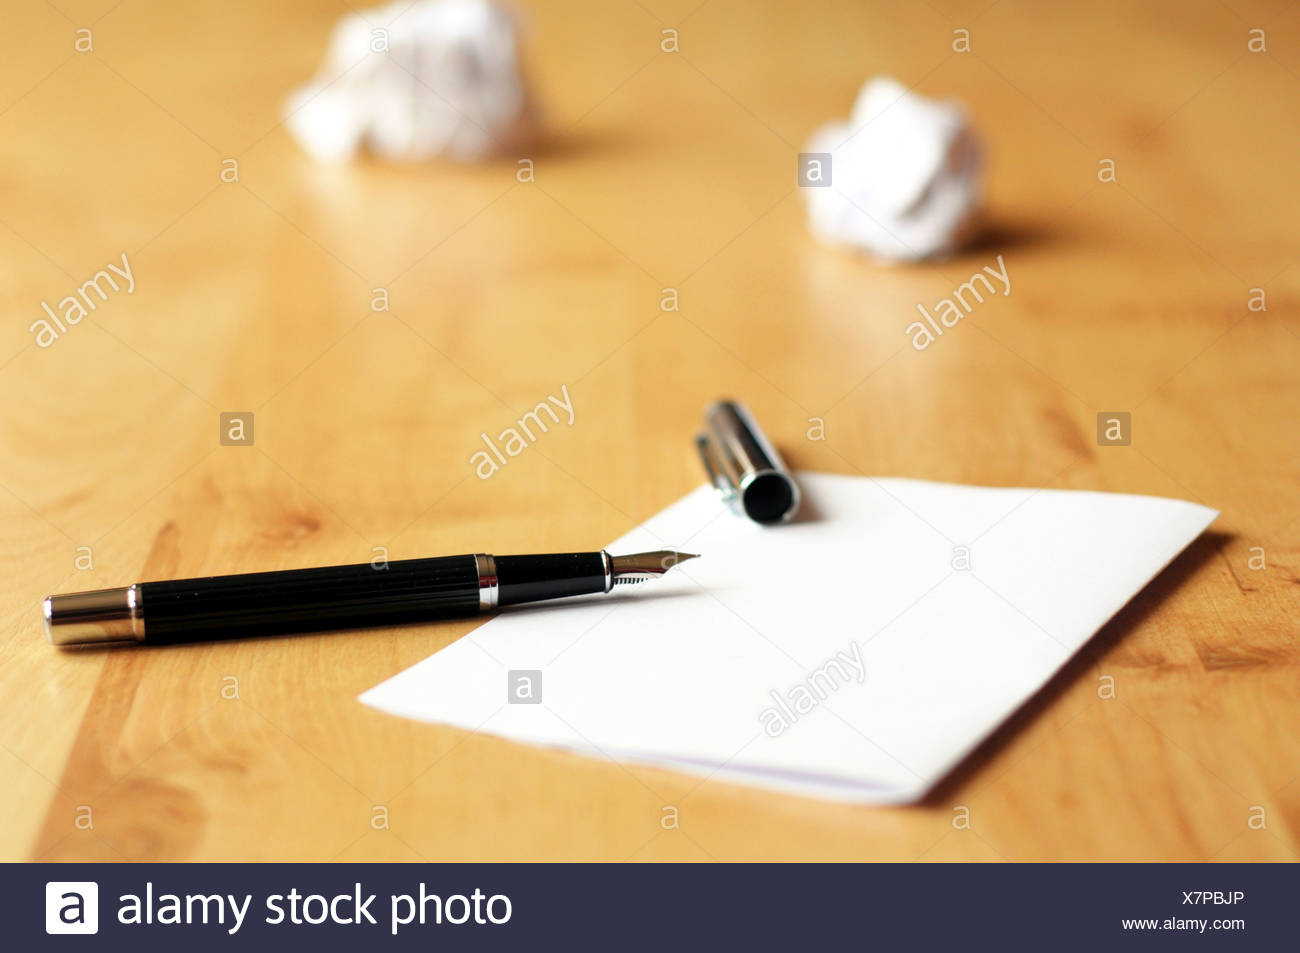 pen and paper in a wooden desktop showing creativity concept Stock Photo